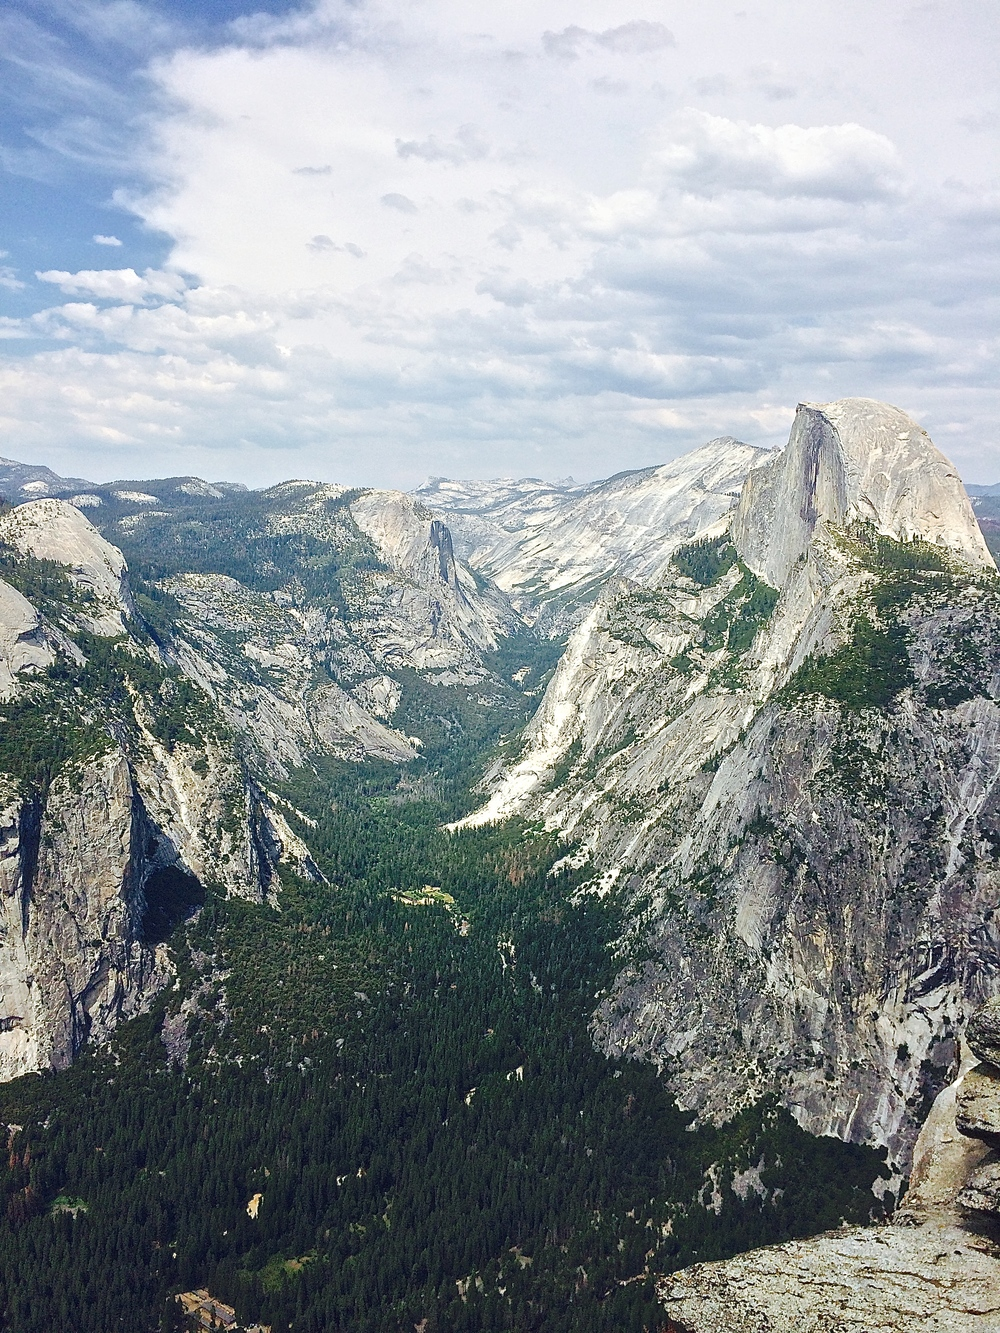 From Glacier Point looking at Half dome and towards Tuolumne Meadows